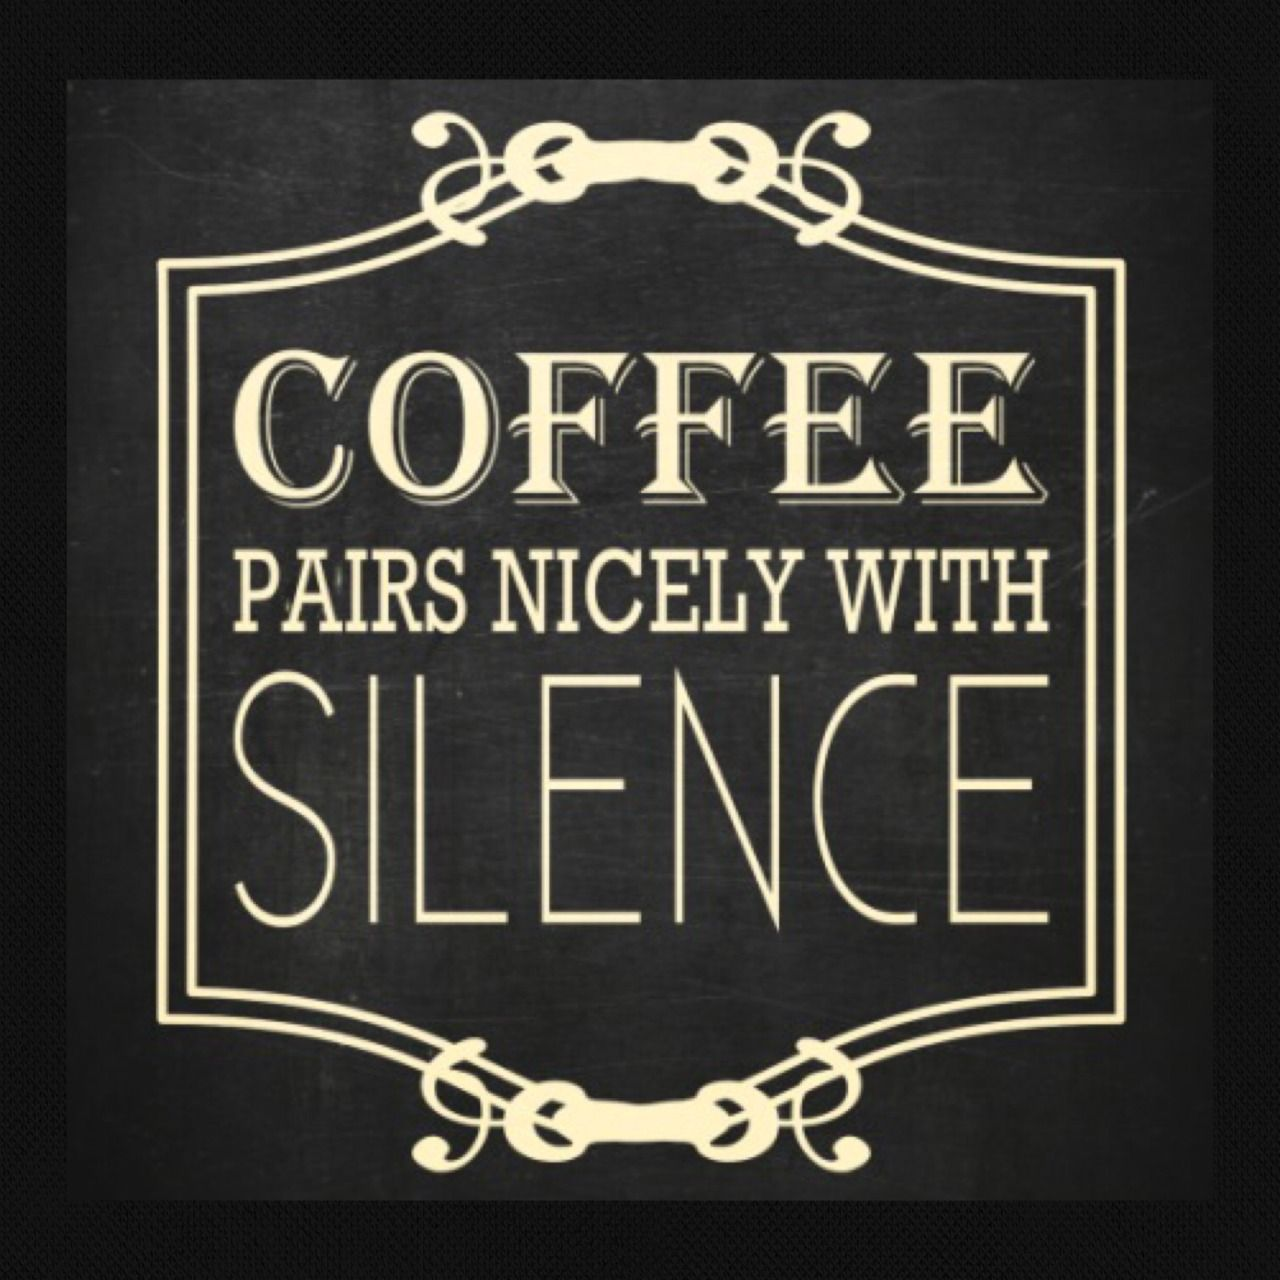 Coffee pairs nicely with silence,